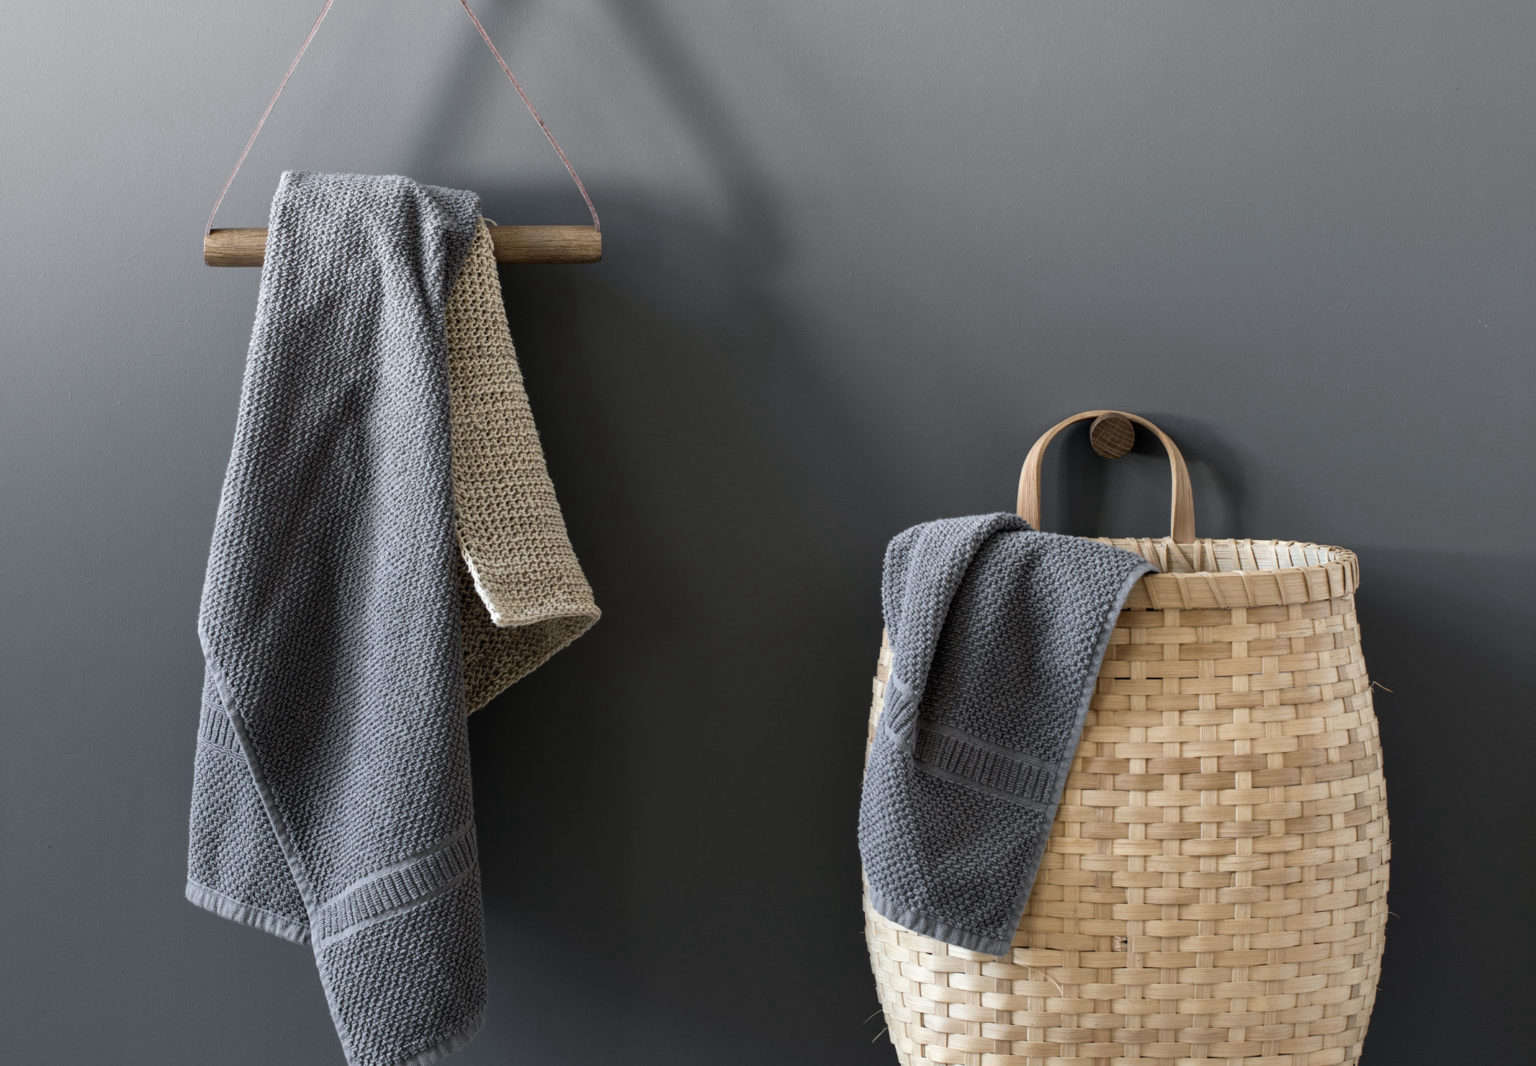 Leather And Wood Towel Hanger And Smoked Oak Knot Knob From By Wirth,  Denmark.